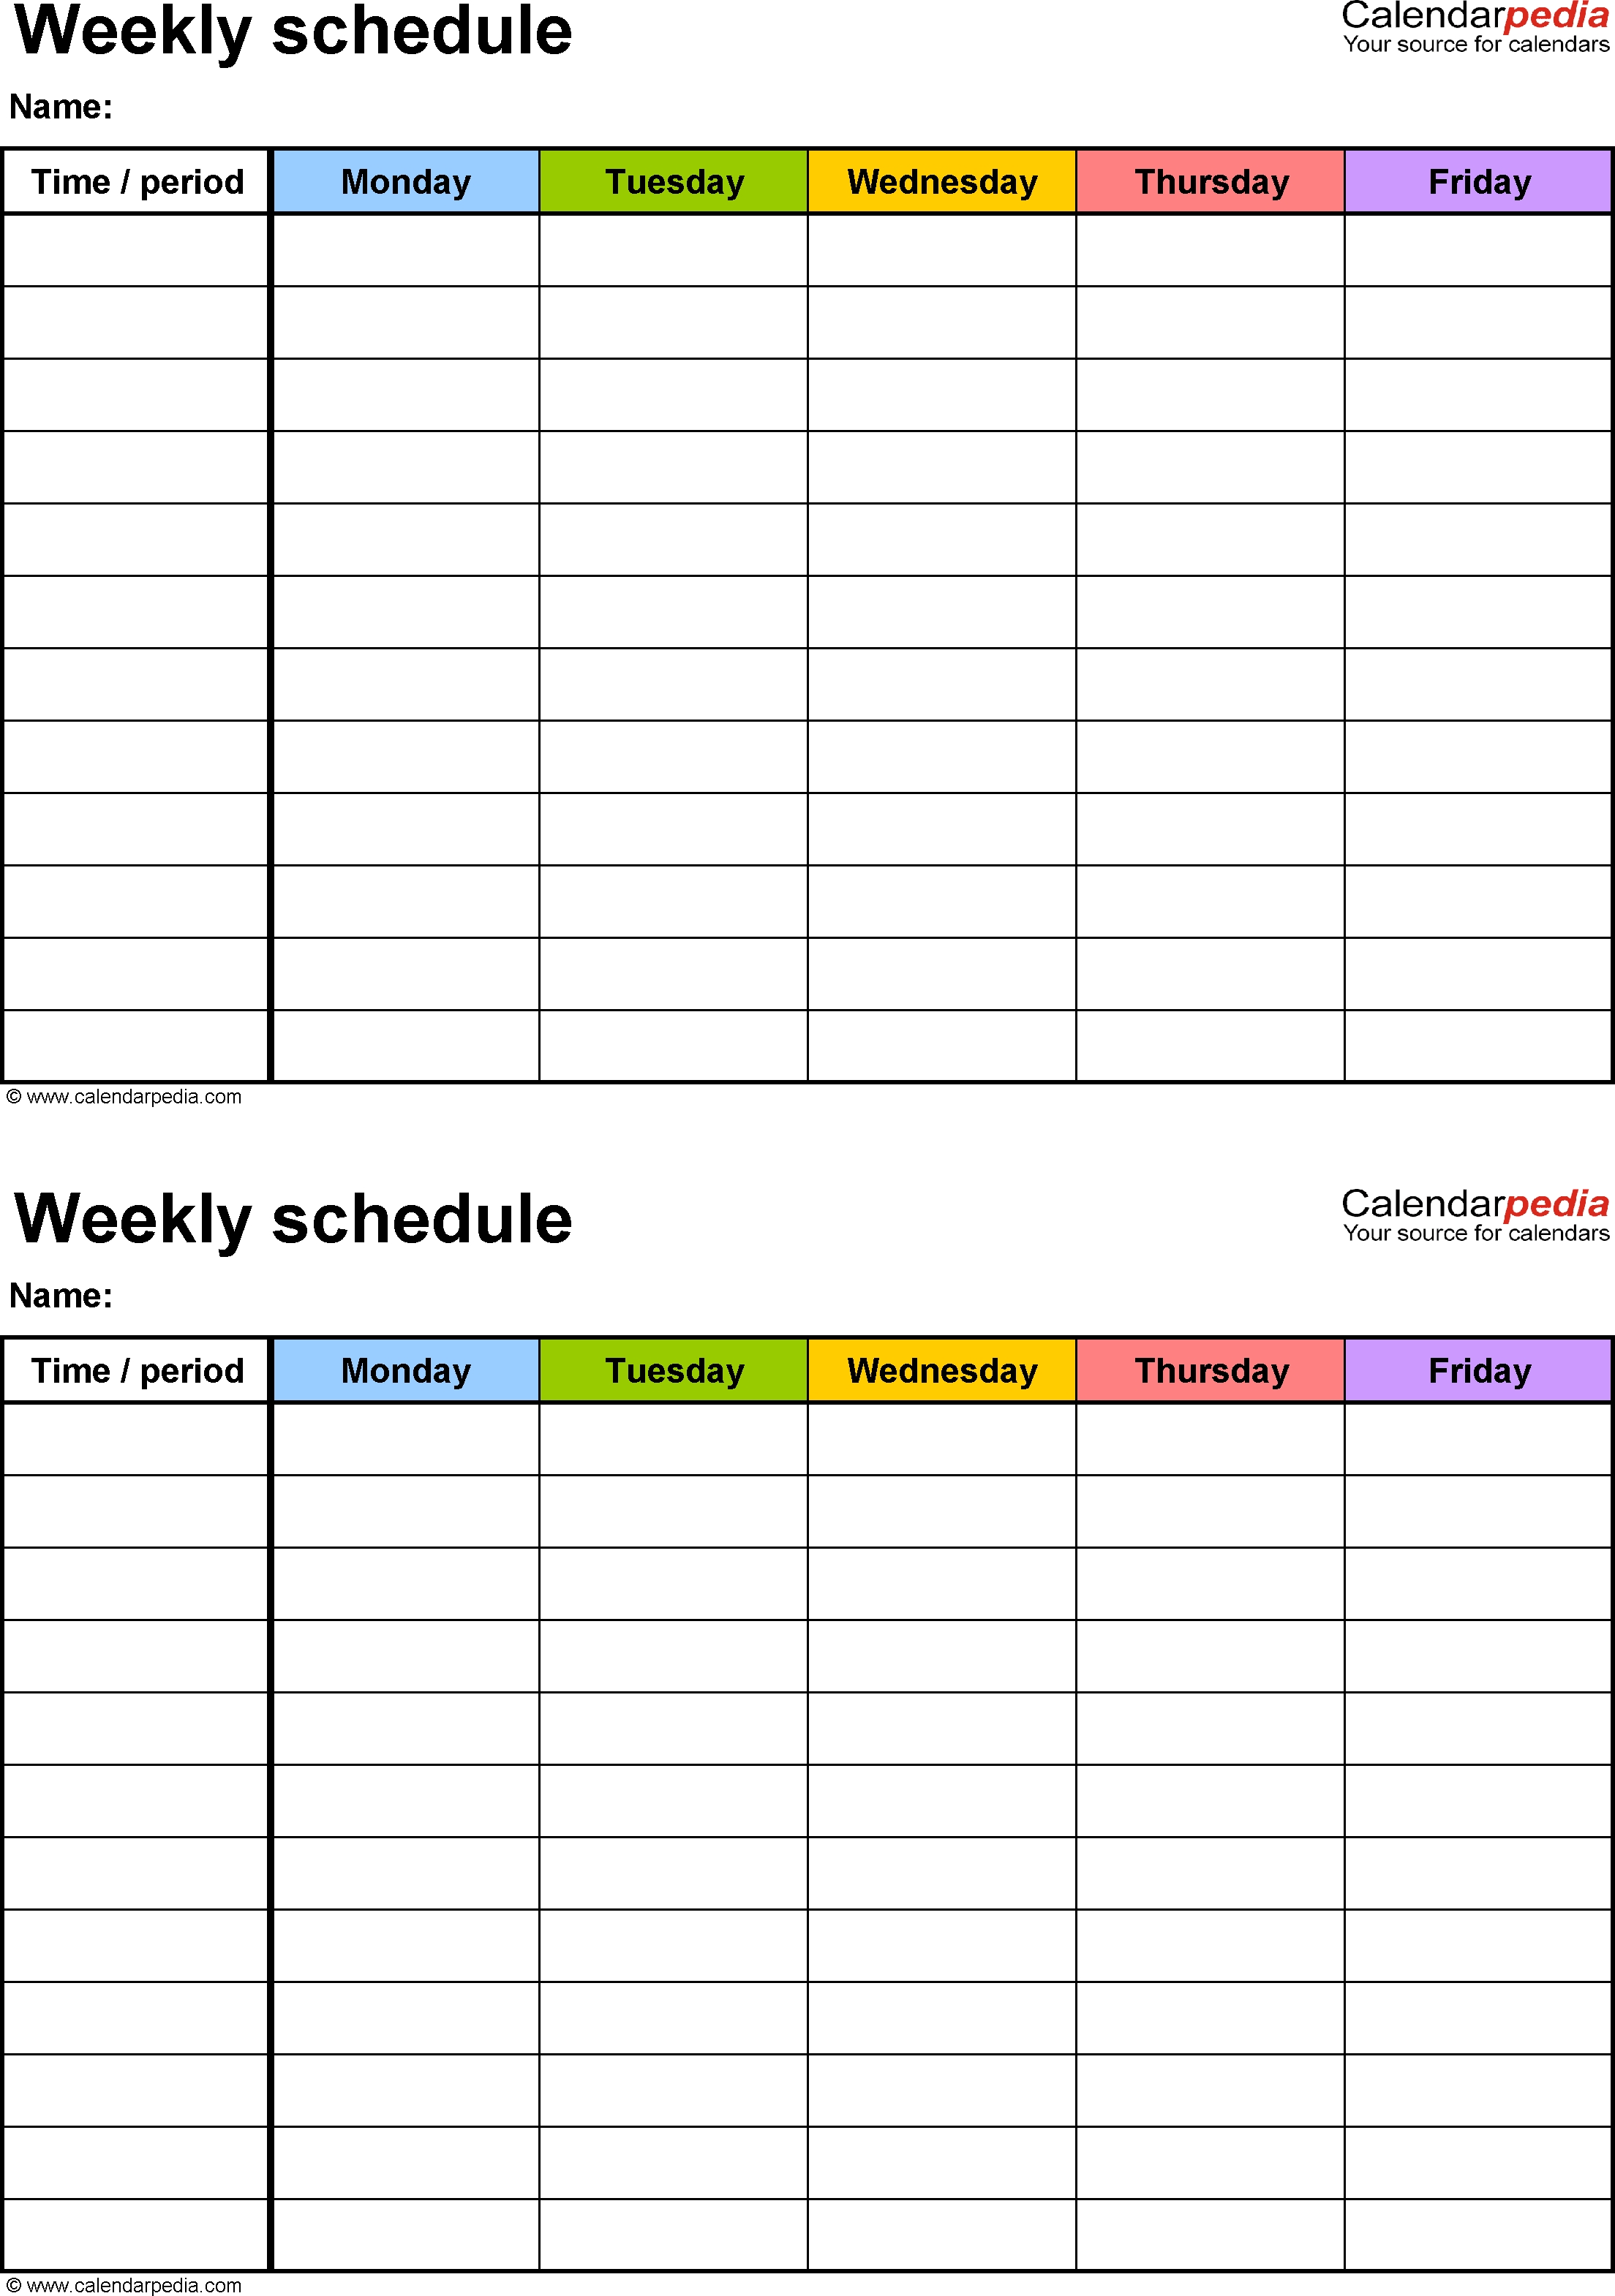 Free Weekly Schedule Templates For Word - 18 Templates intended for Calendar By Month Monday To Friday